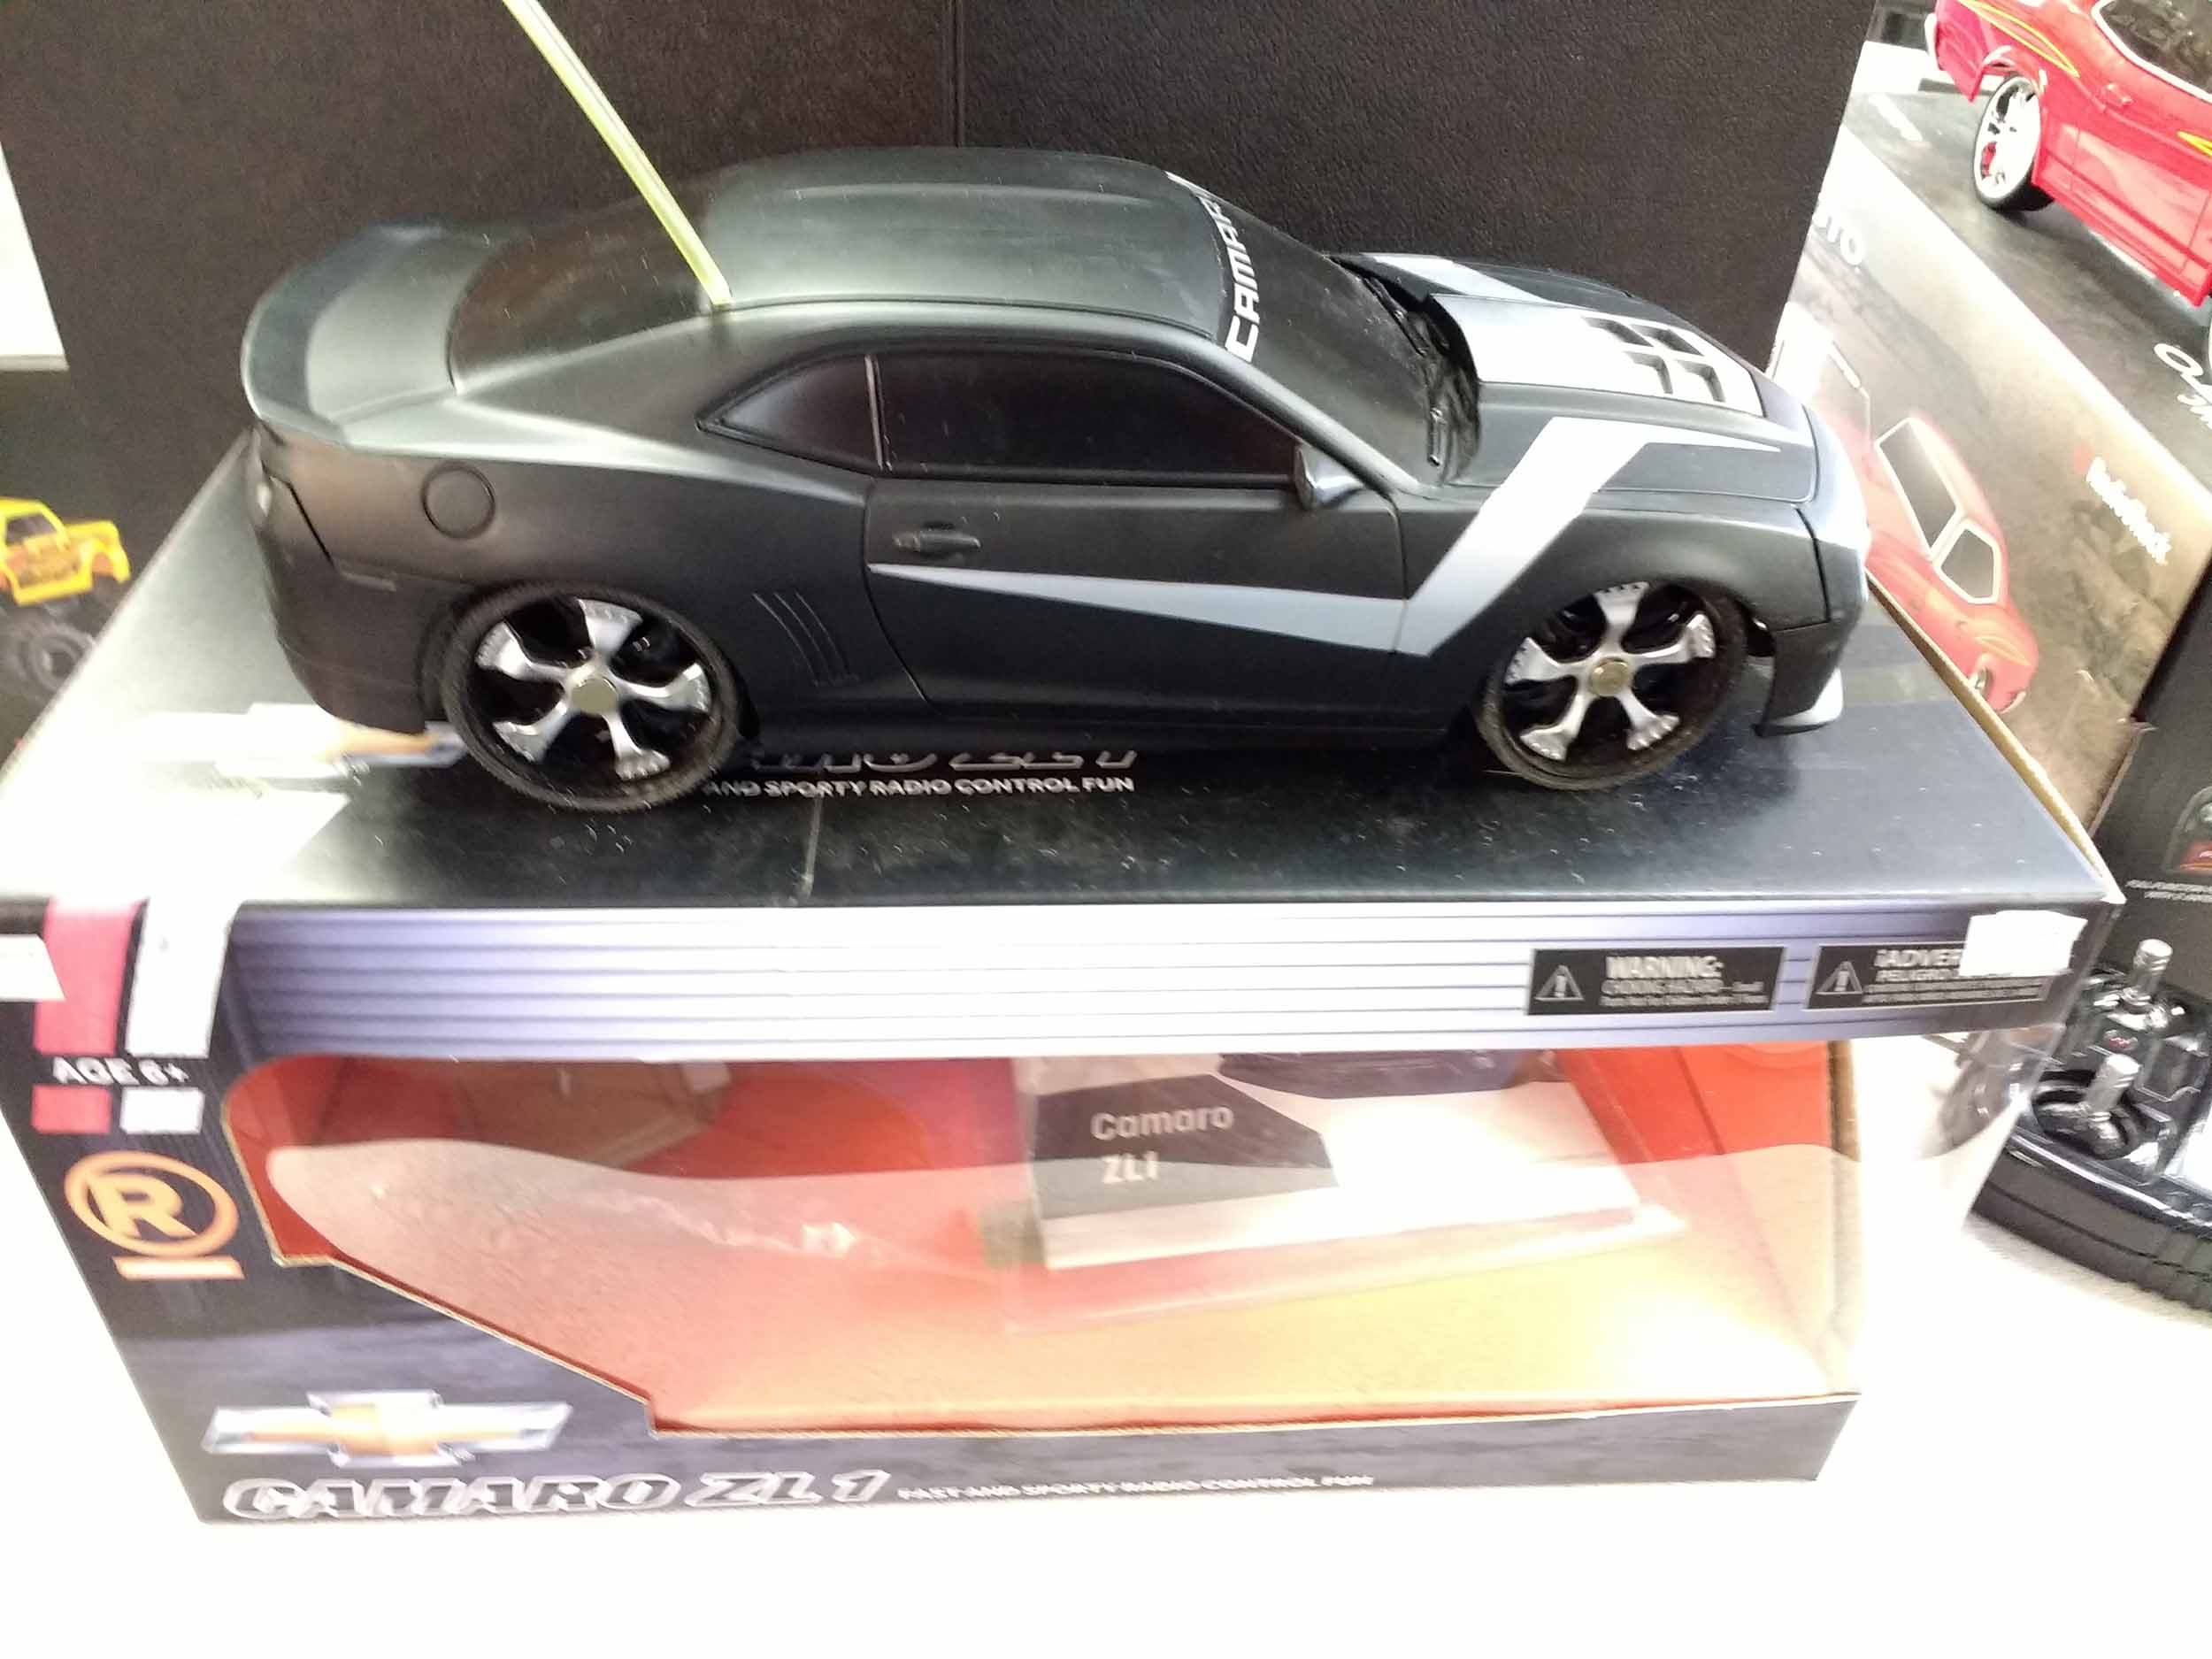 A hot late model contemporary muscle car makes great radio control fun.